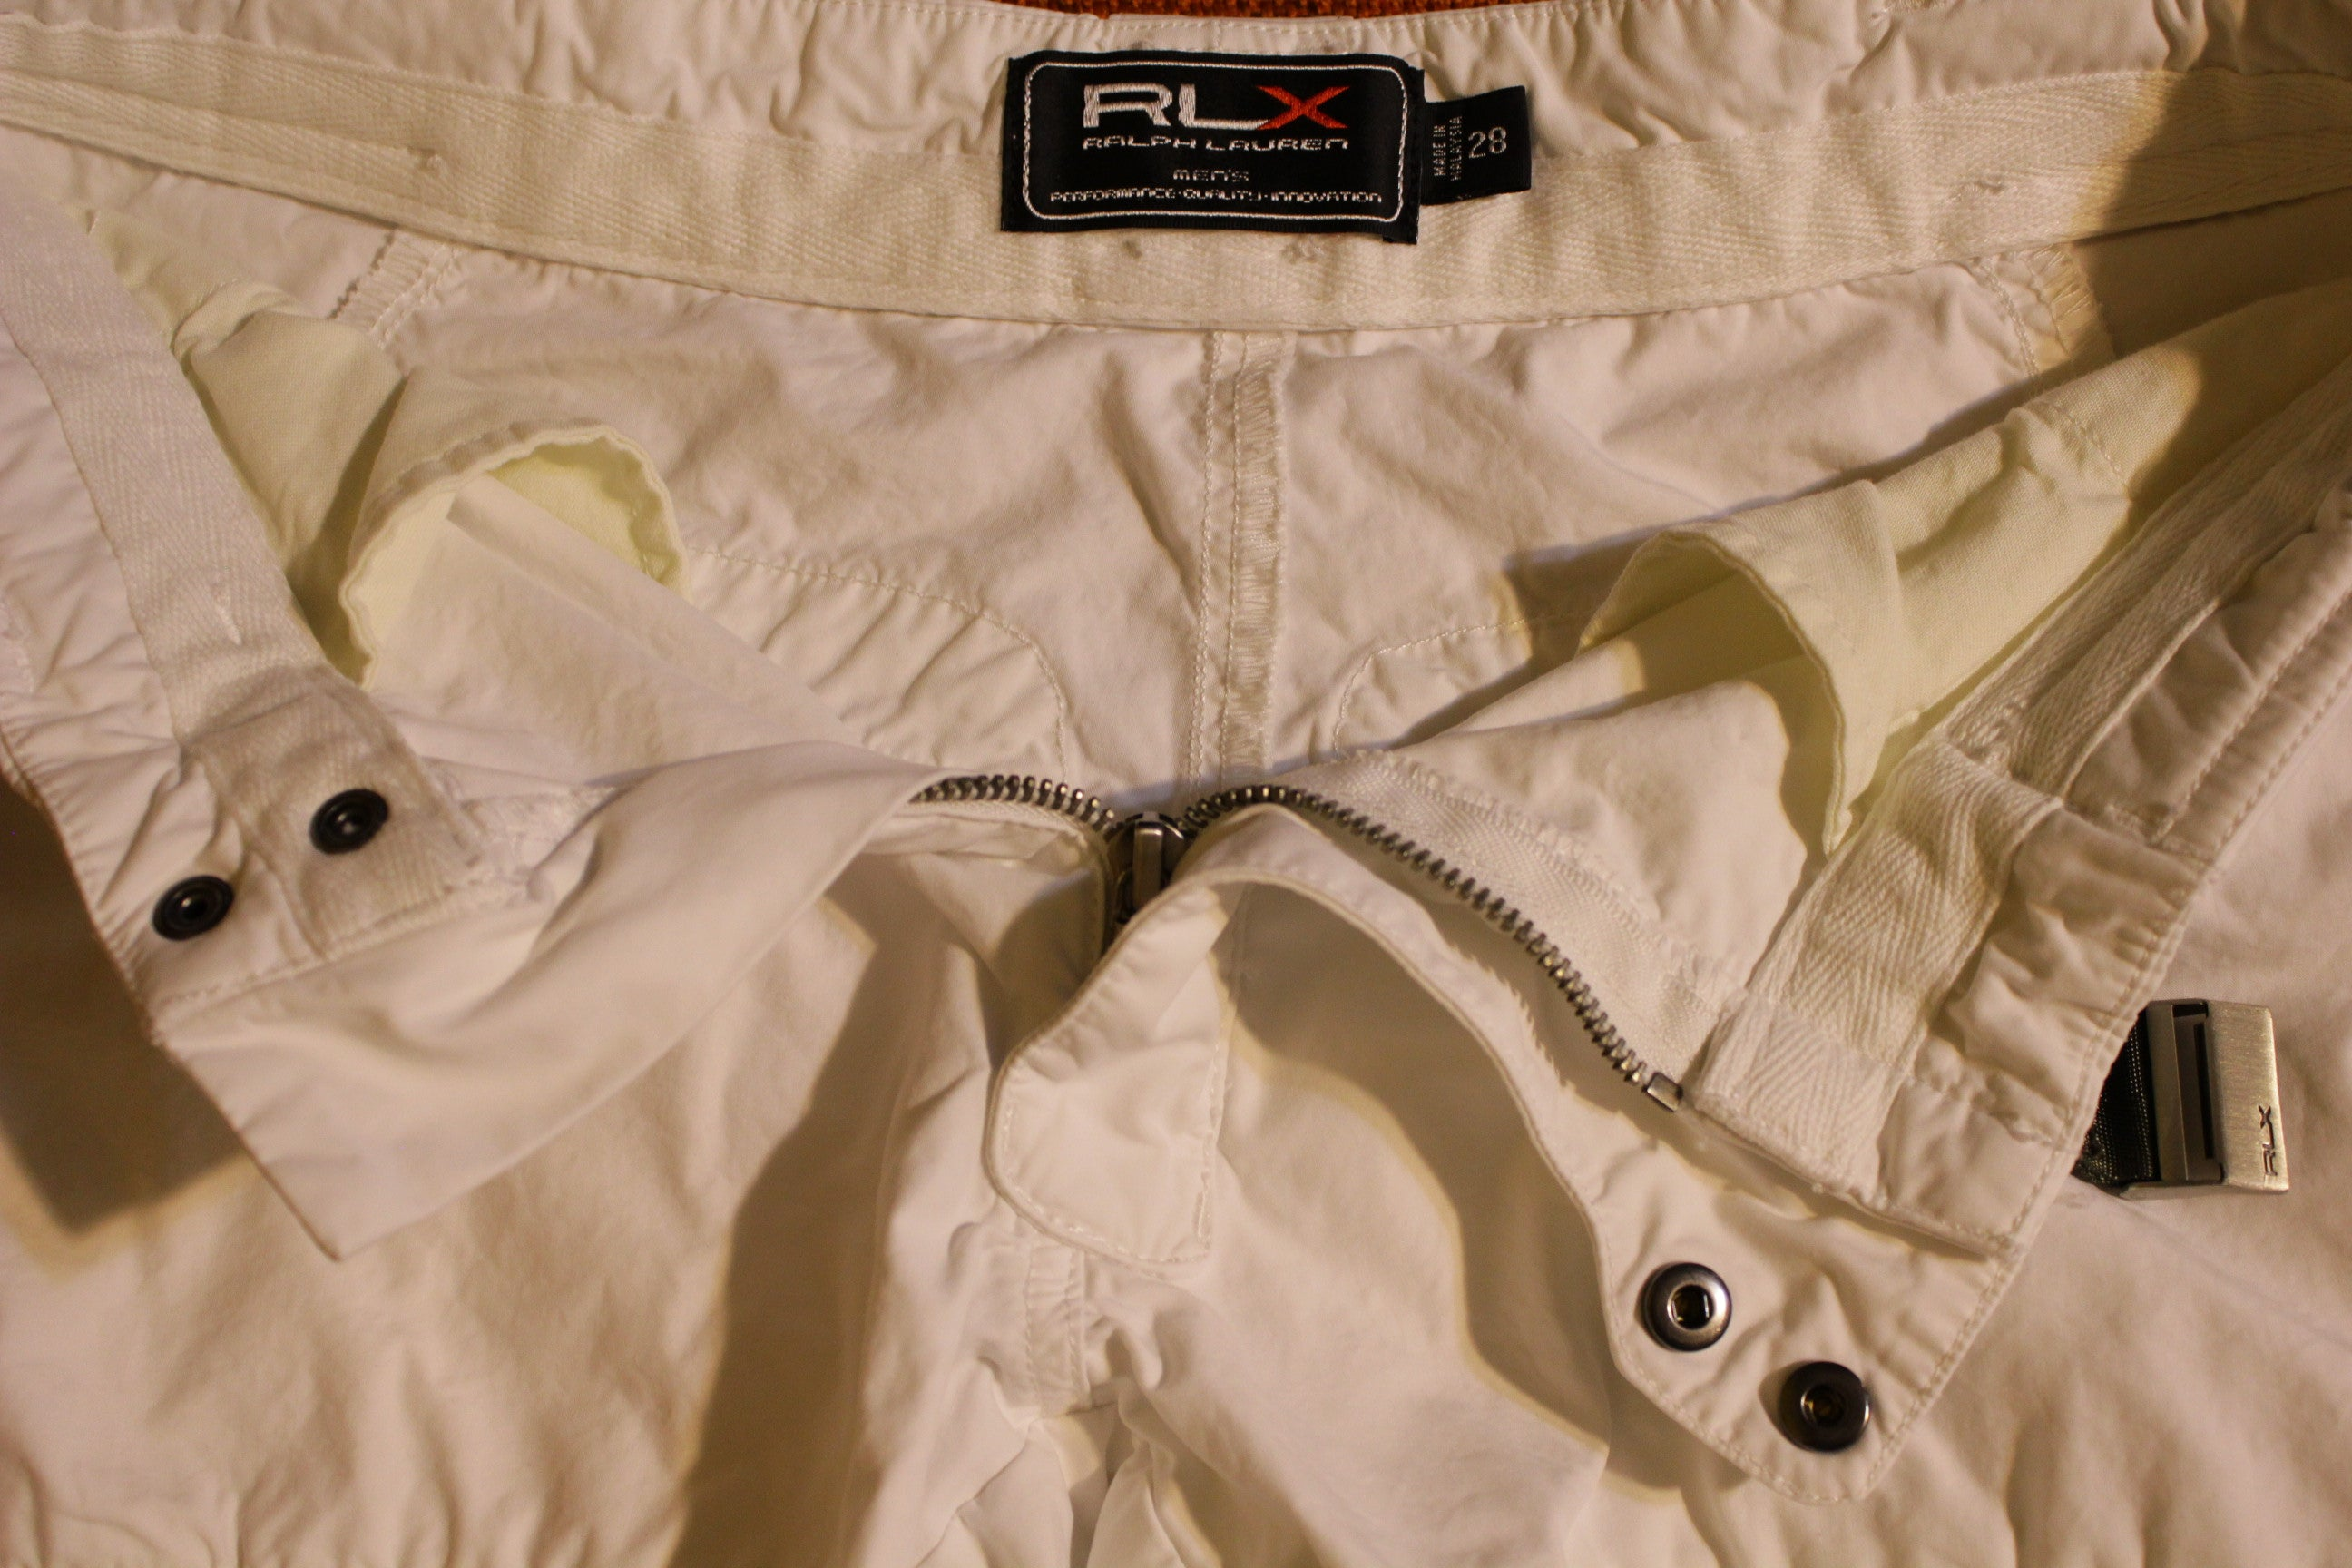 Ralph Lauren RLX Vintage Military White Cargo Flight Pants 28 x 30 Mens